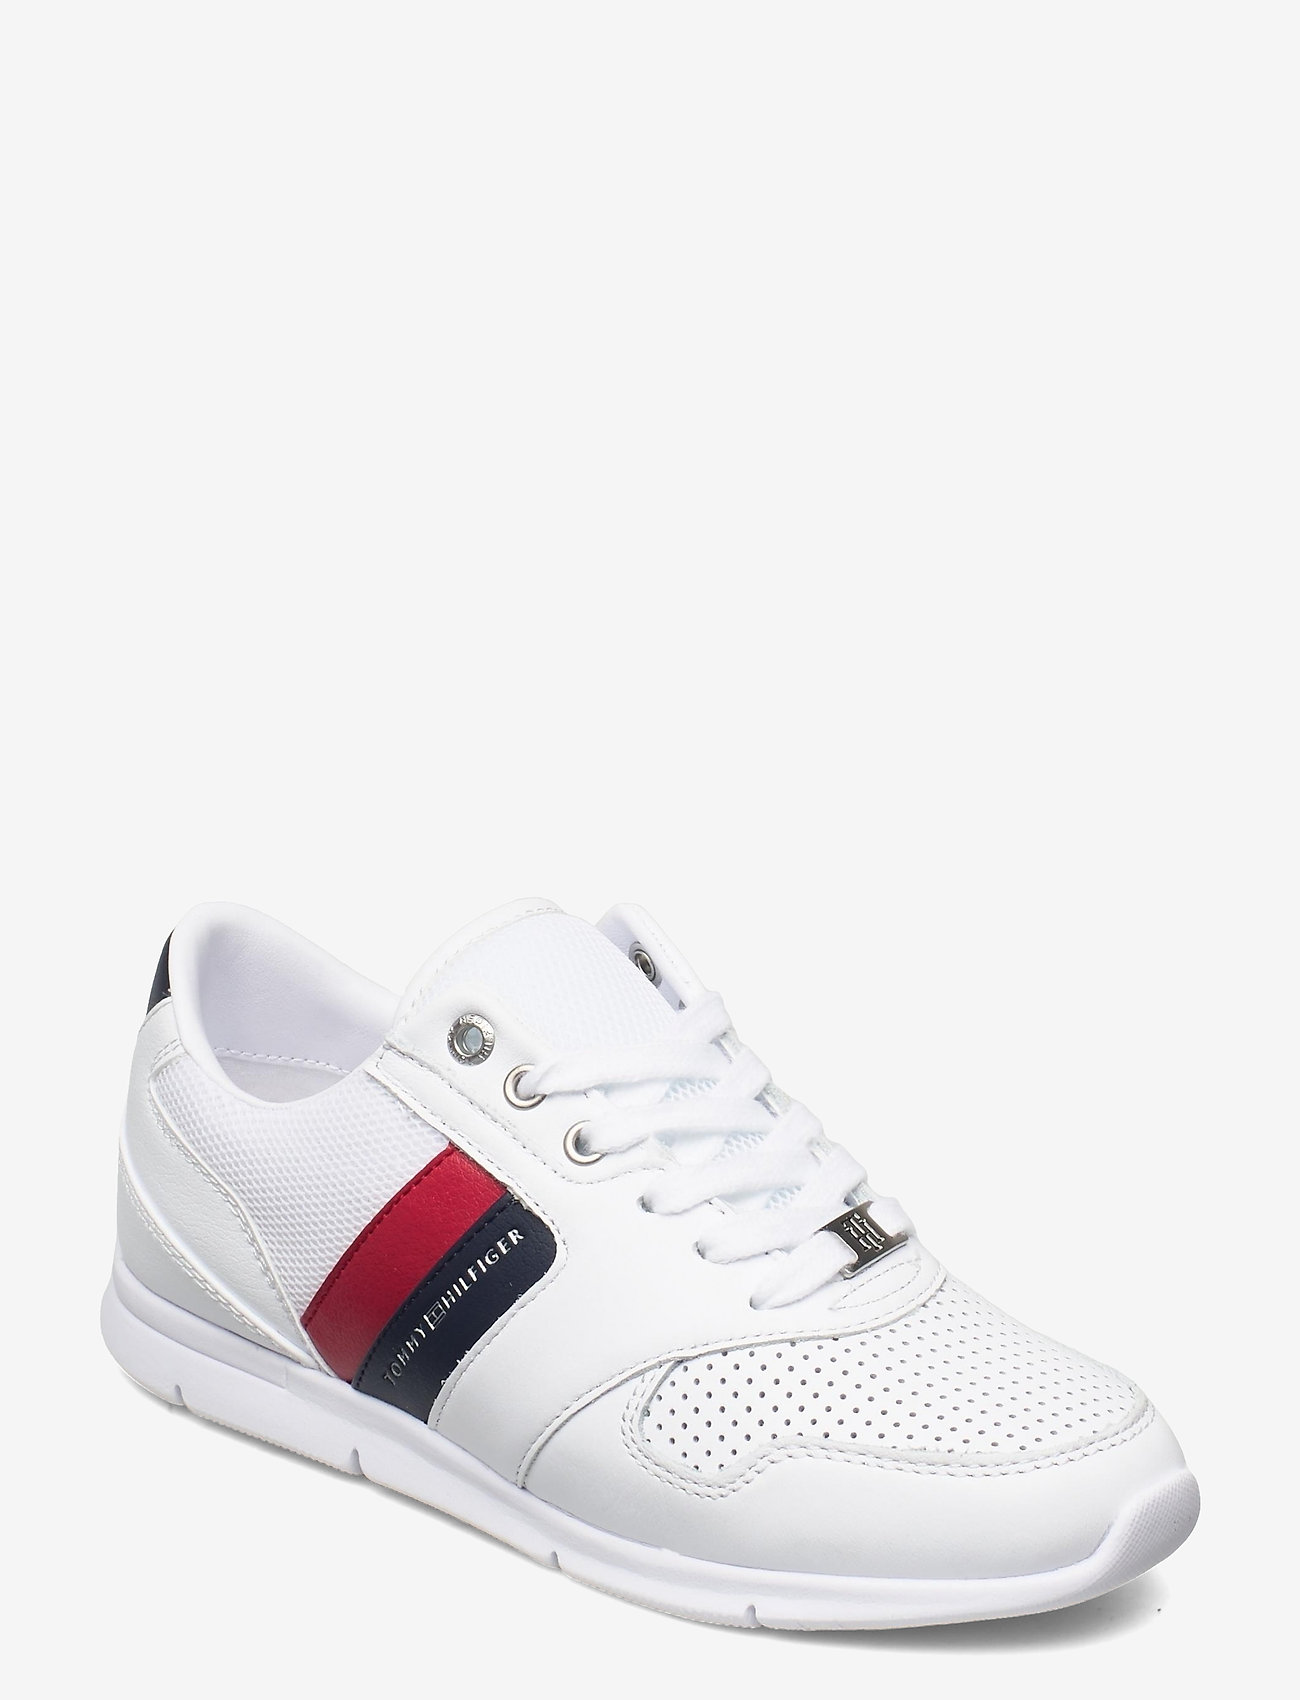 Tommy Hilfiger - LIGHTWEIGHT LEATHER SNEAKER - low top sneakers - rwb - 0